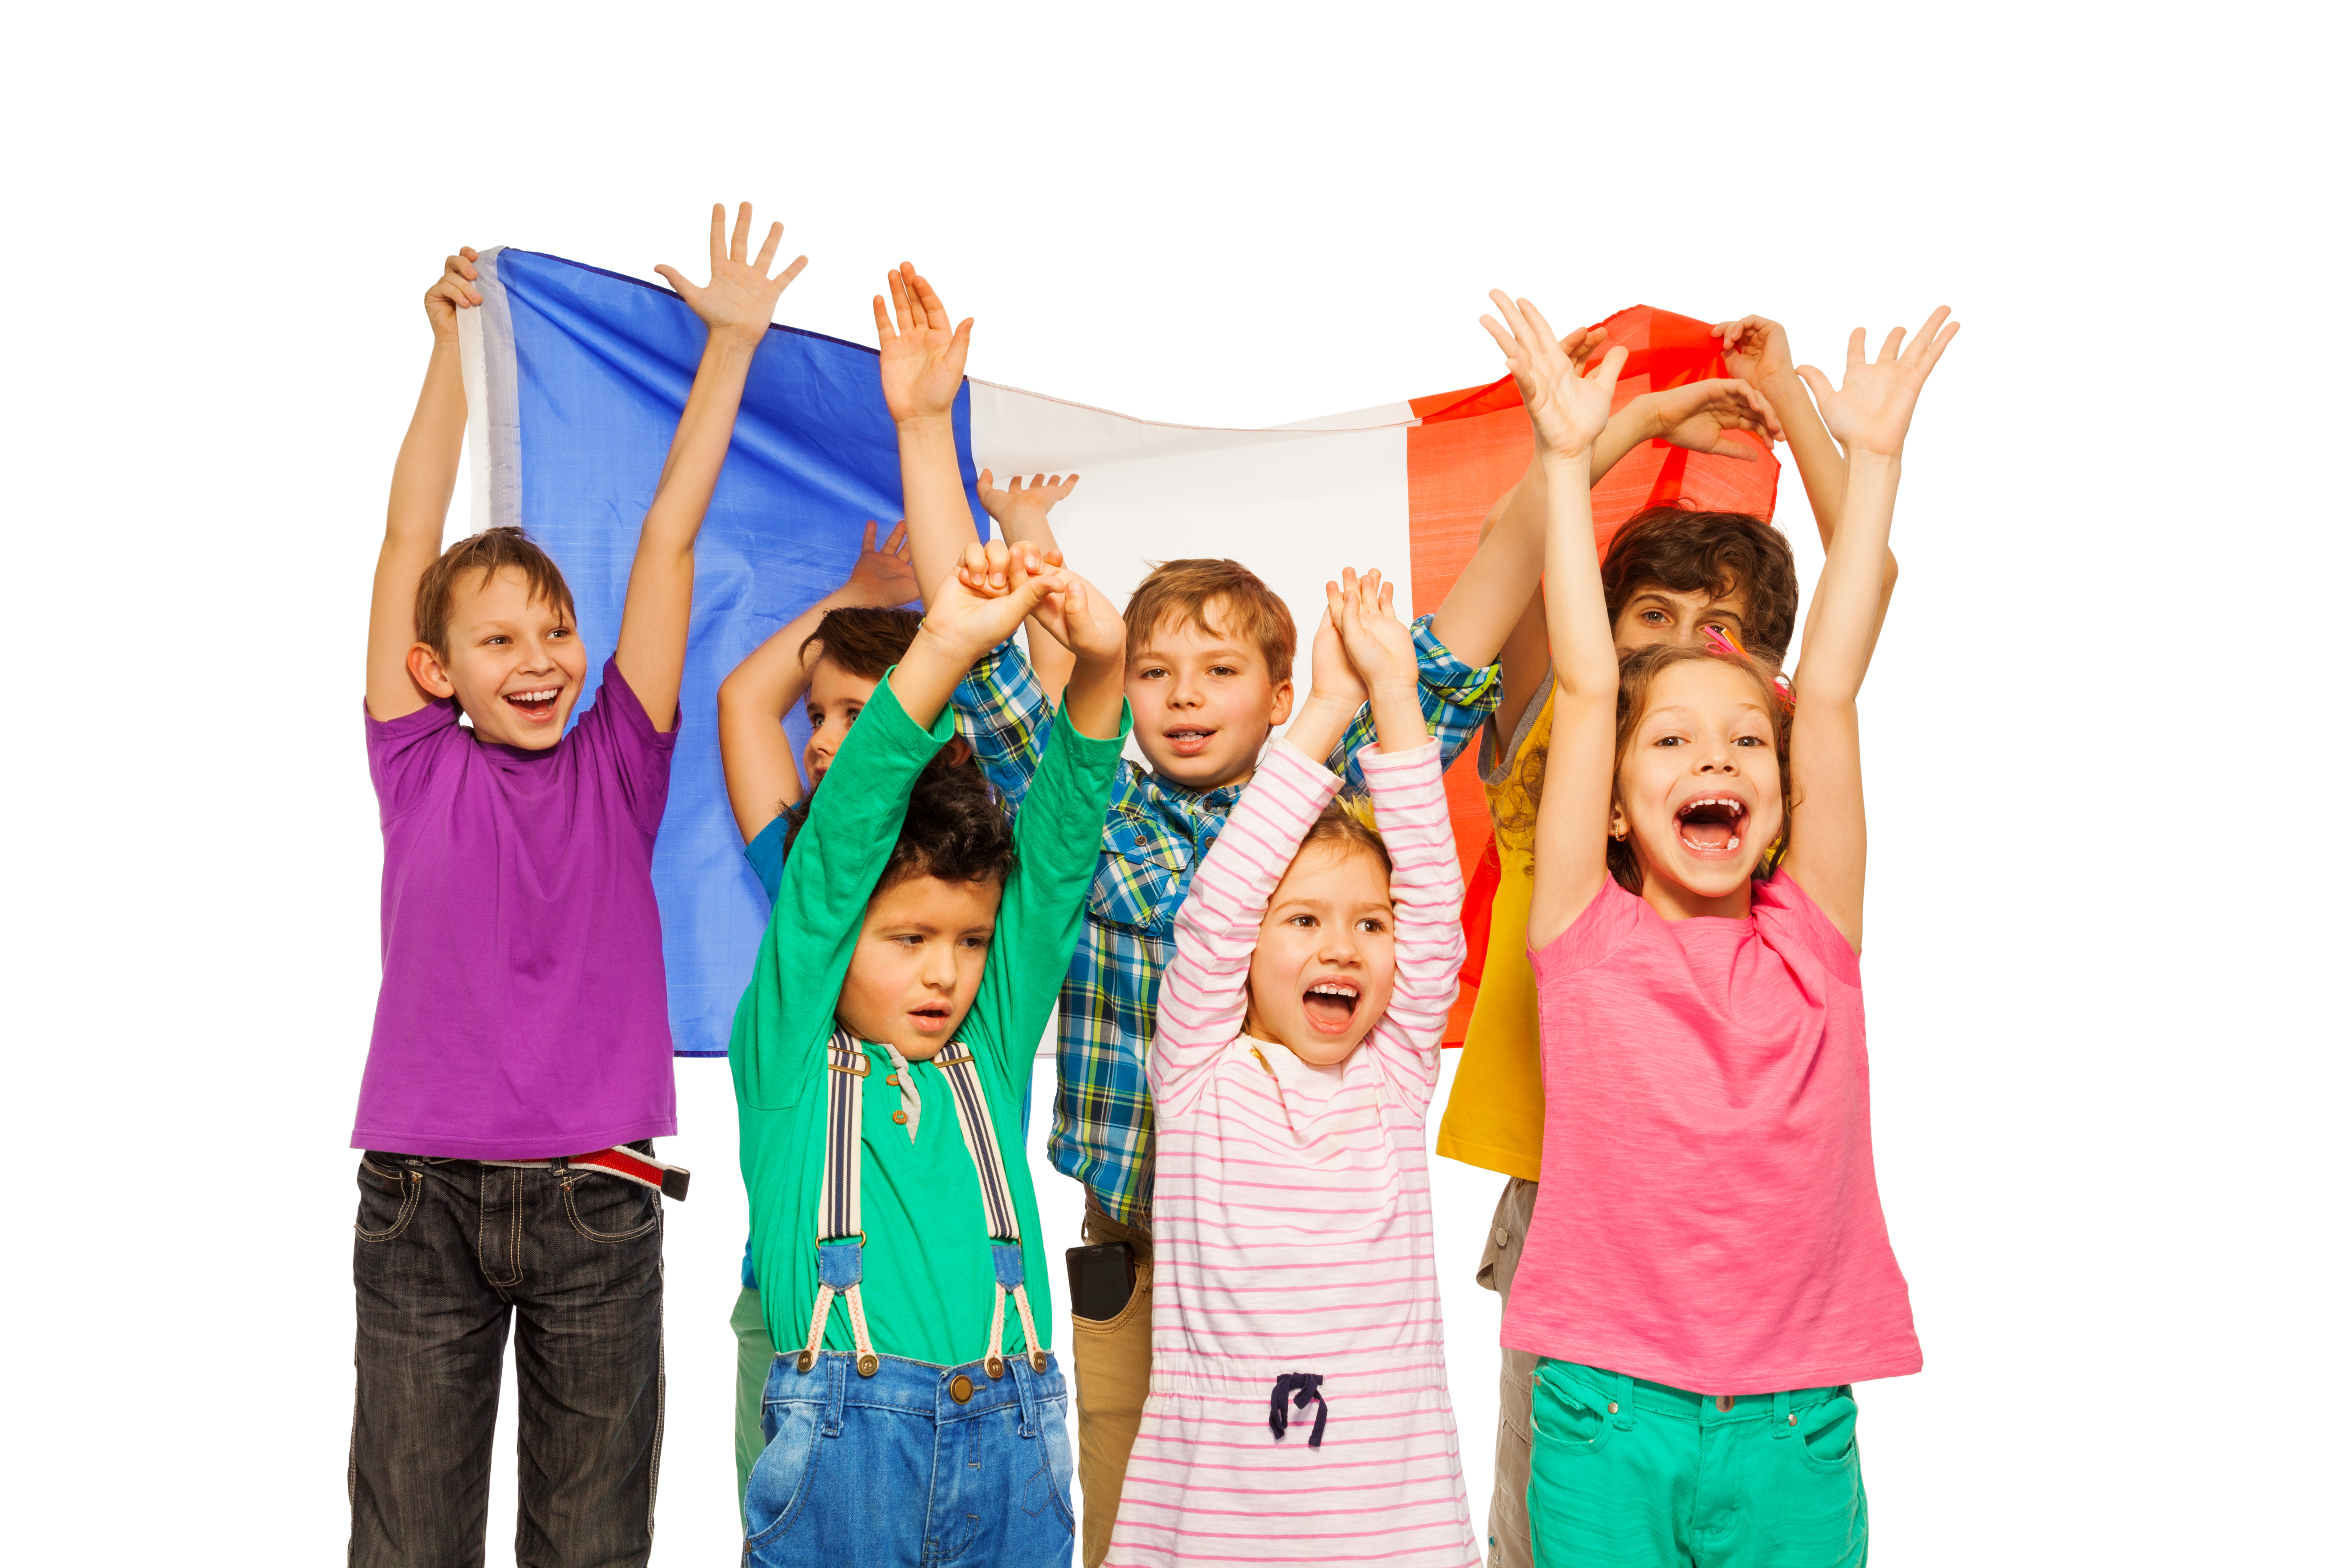 Group of kids holding the French flag behind them